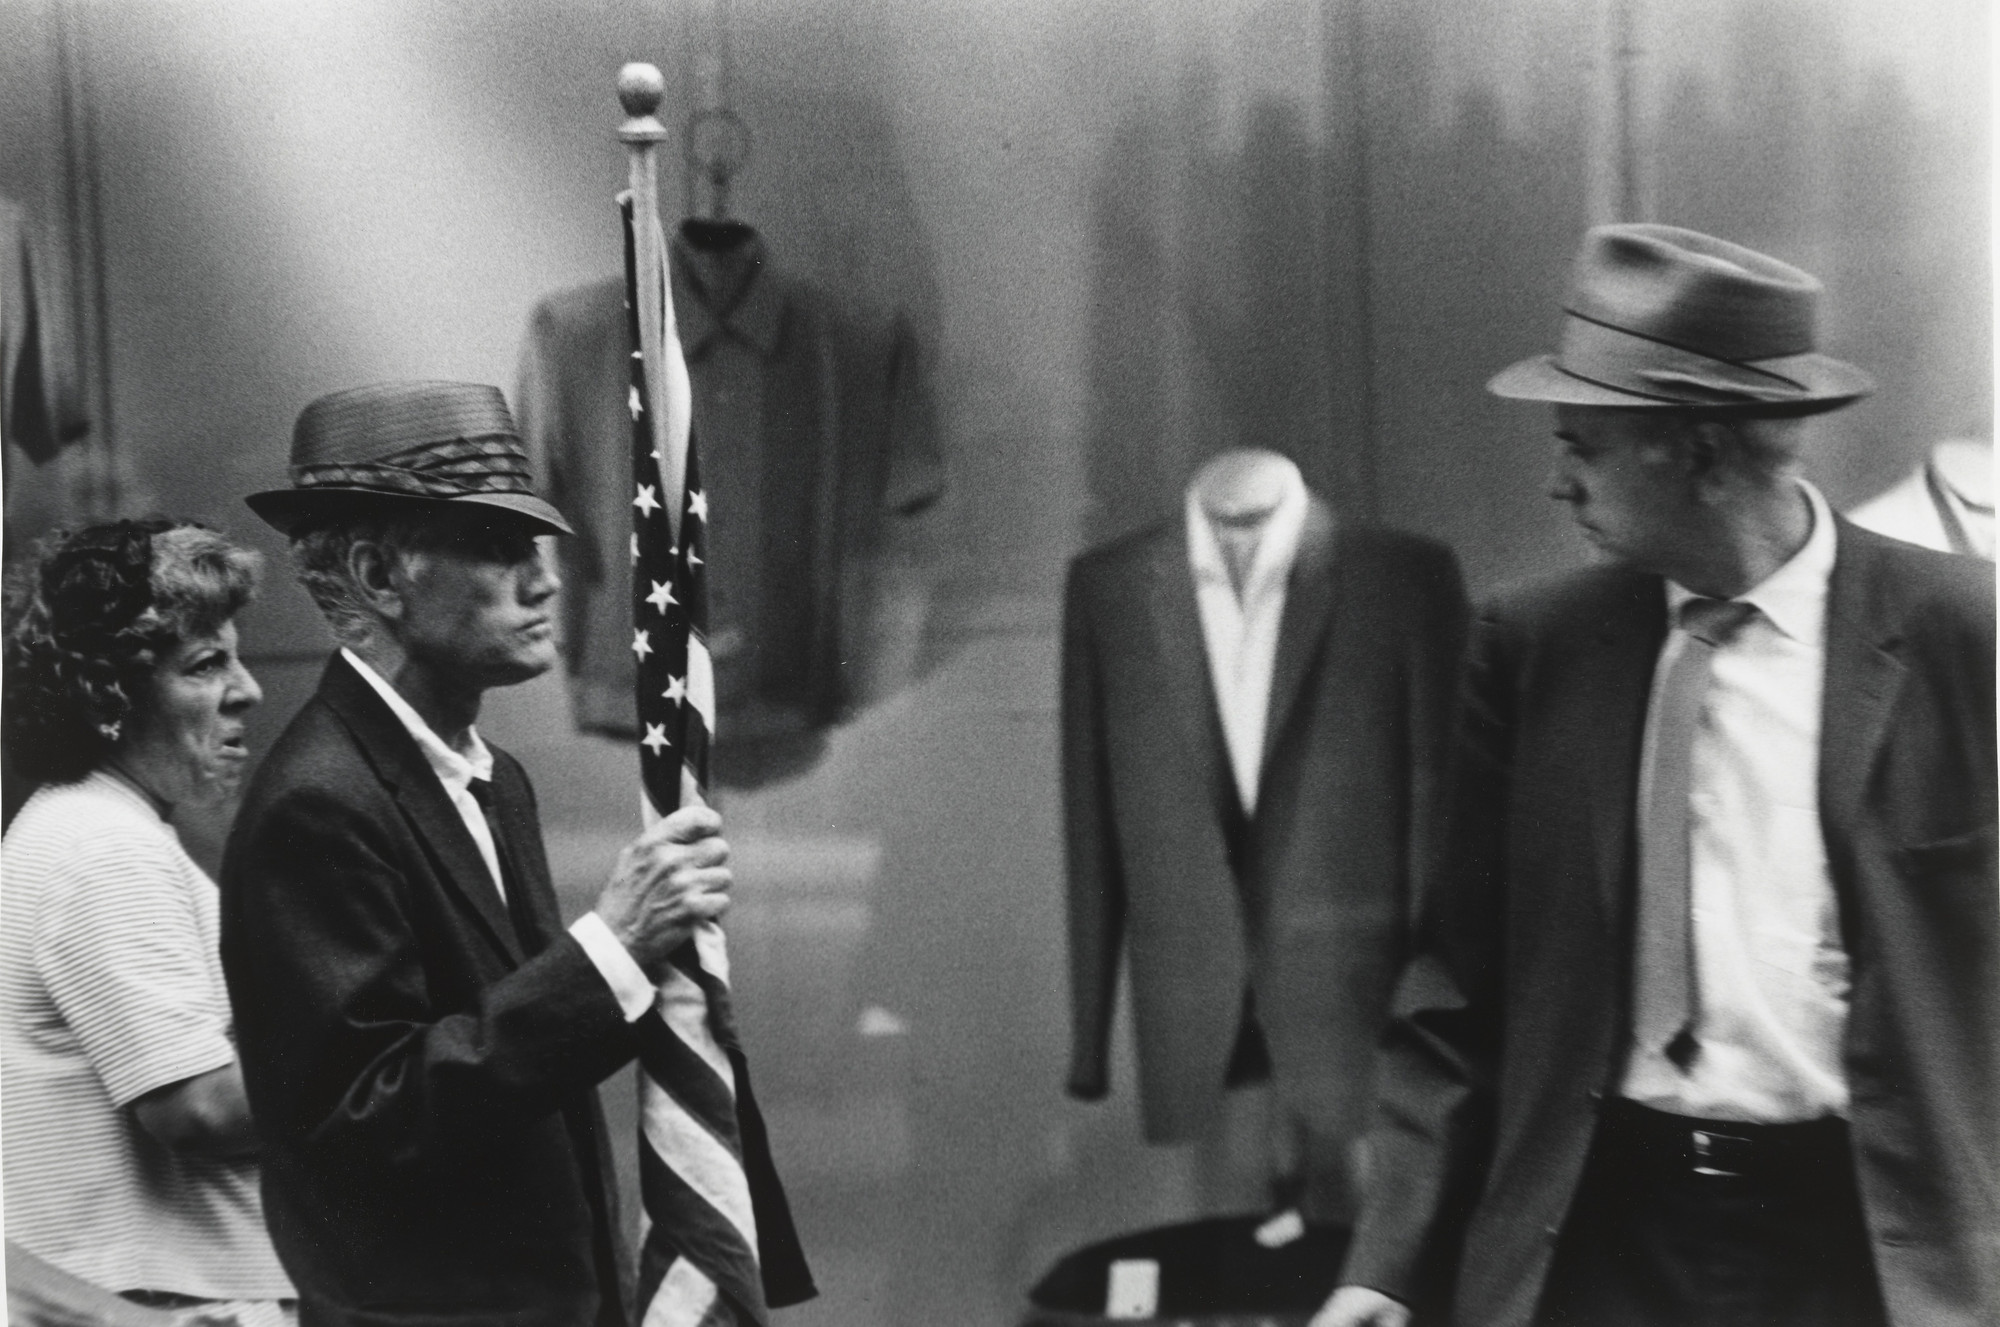 Beuford Smith. Man with Flag, Times Square, NYC. 1967